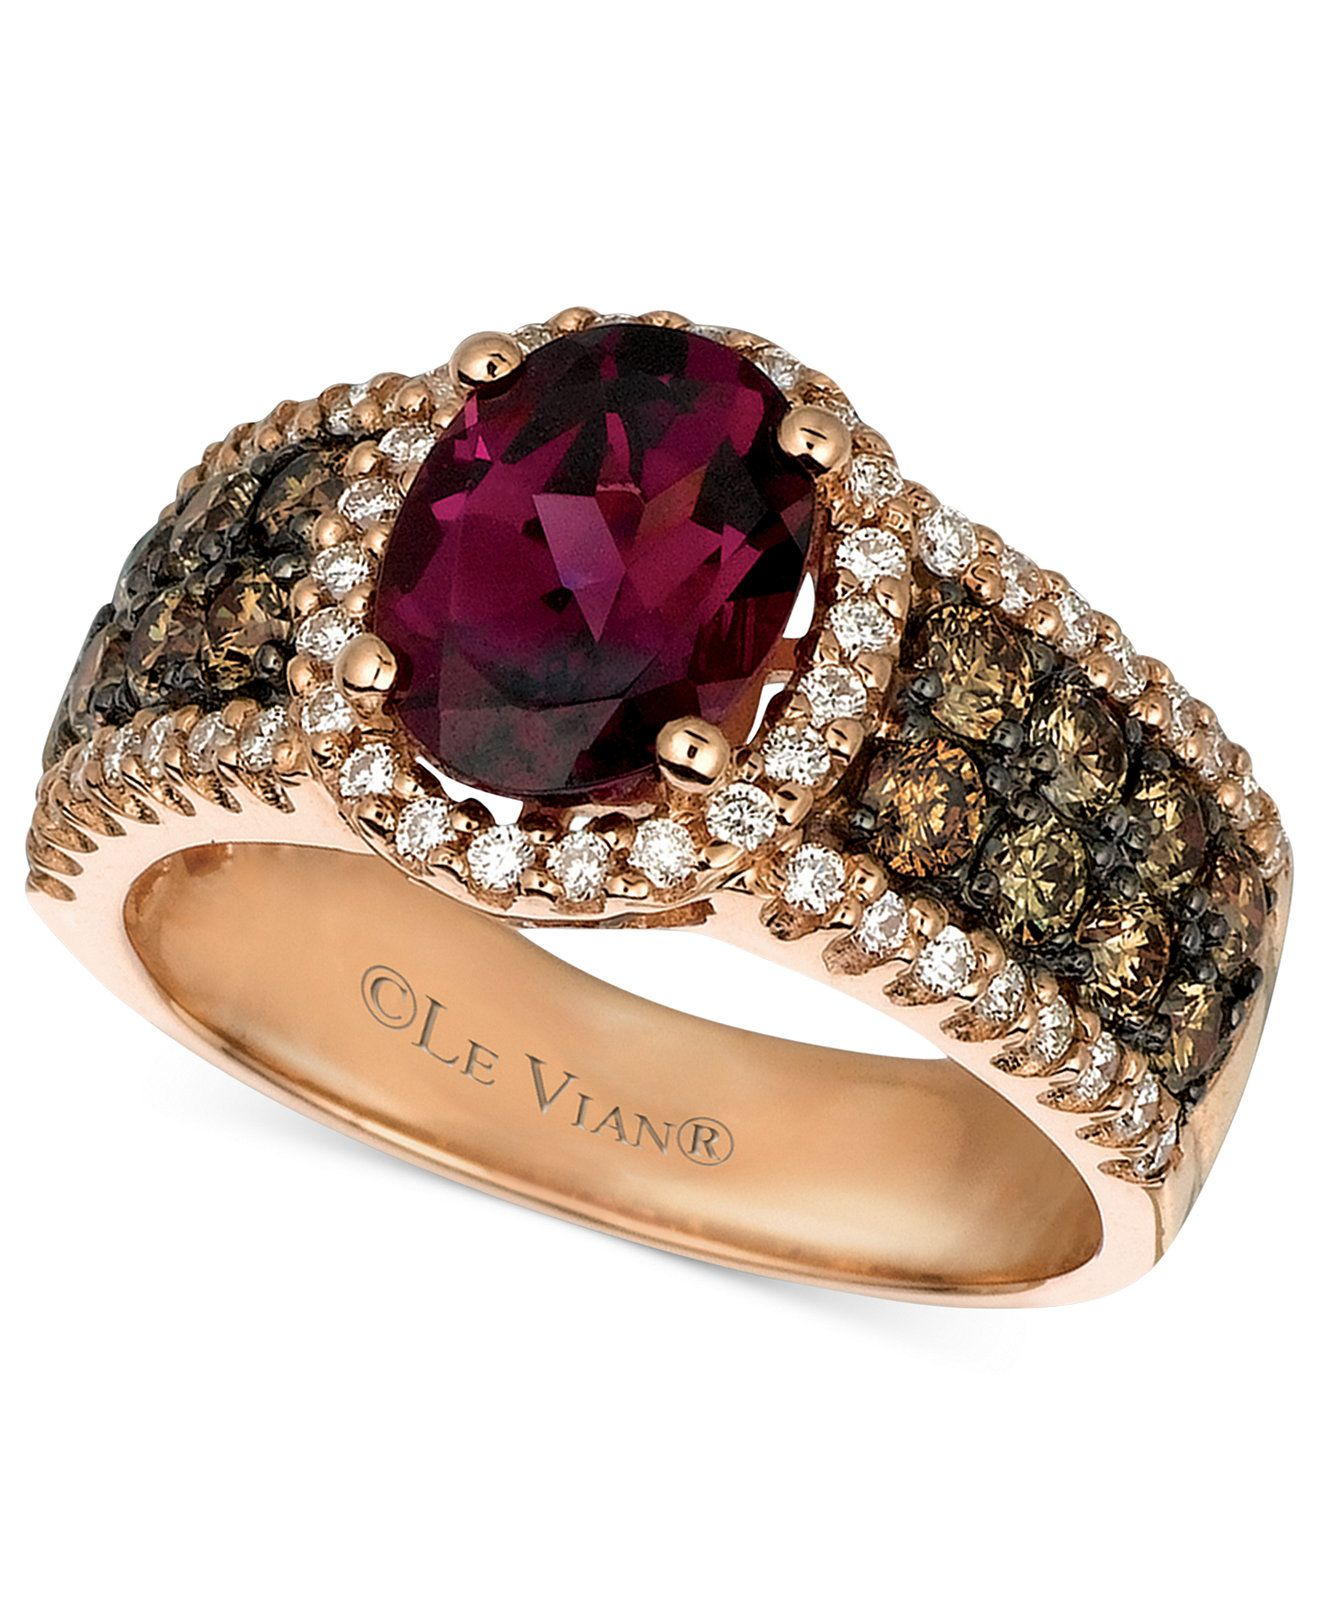 ct bridal chocolate hover diamonds kay vian strawberry diamond gold le zm kaystore to bands mv en engagement tw zoom ring